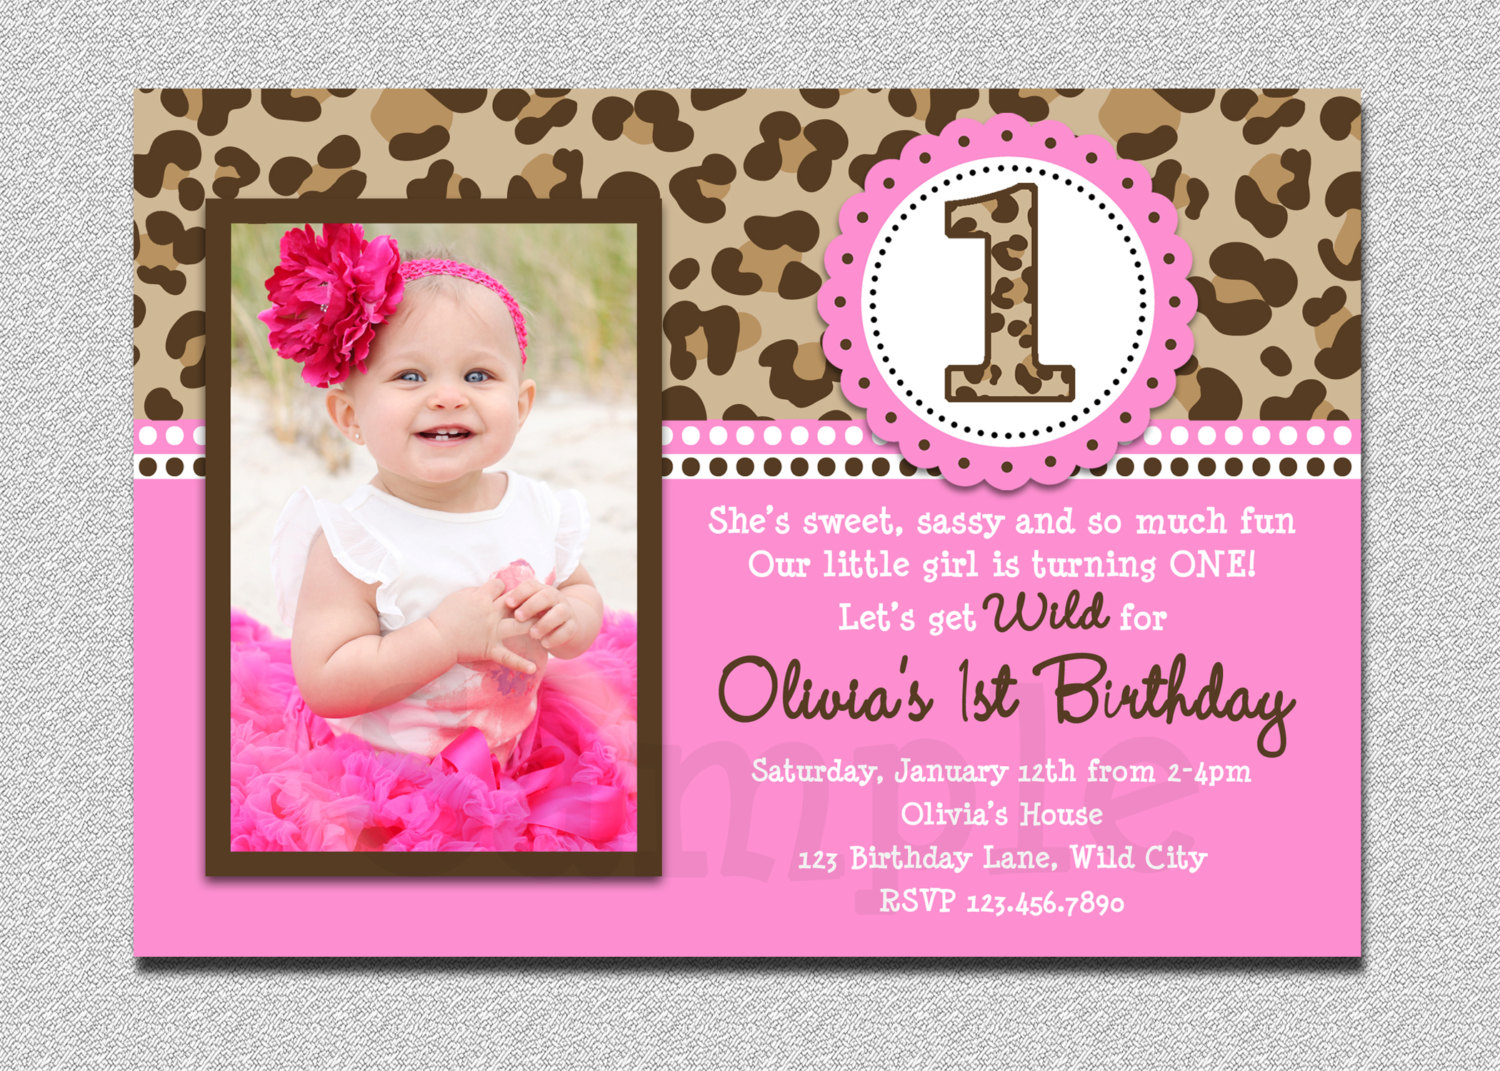 1000+ Images About Braelynn's 2nd Birthday!! On Pinterest